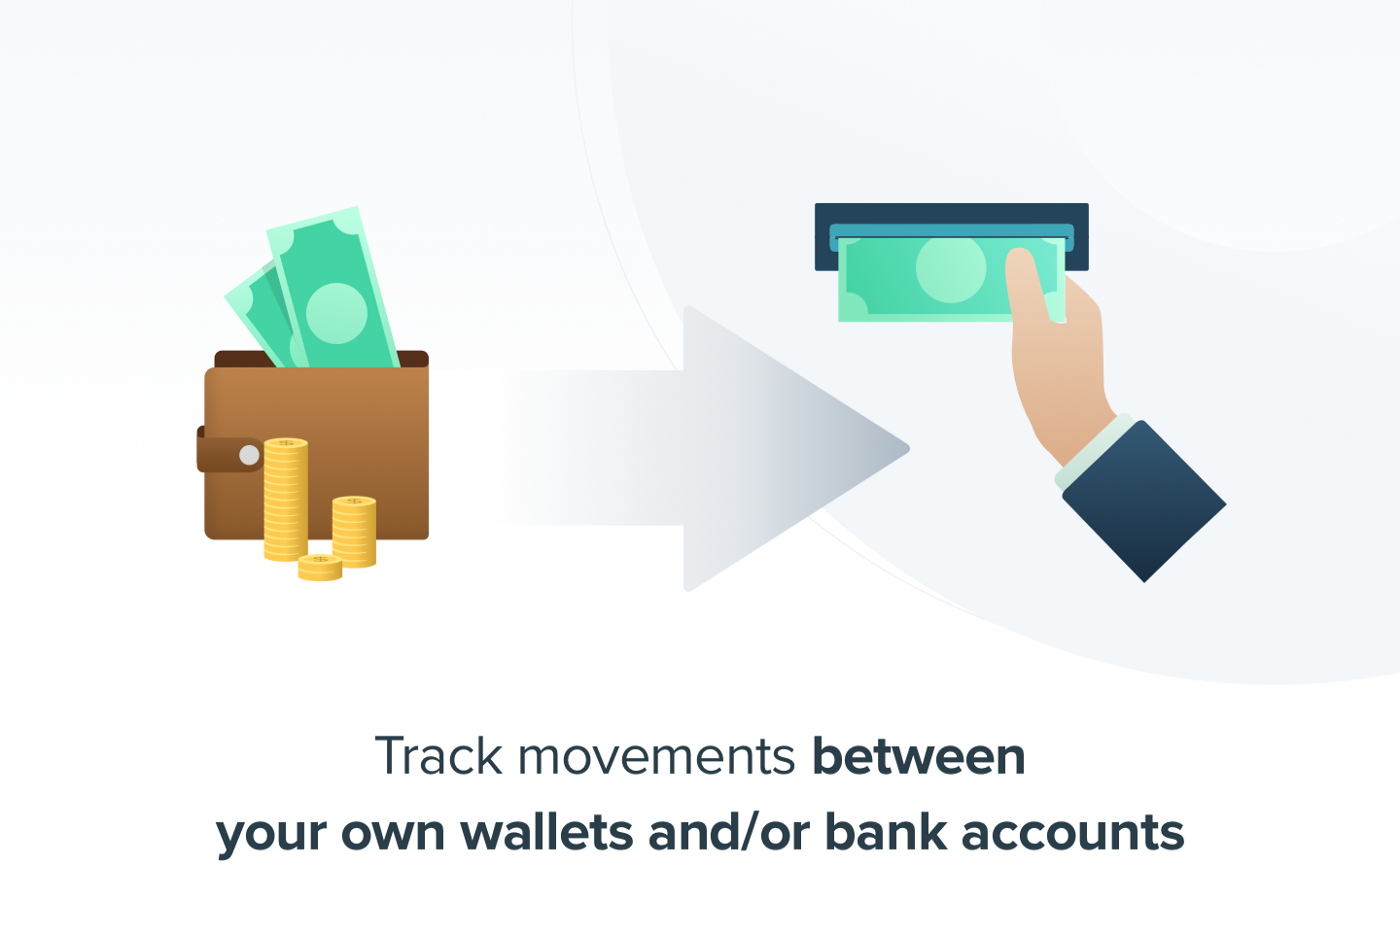 New Feature Alert! Introducing Transfers - Spendee: when your money